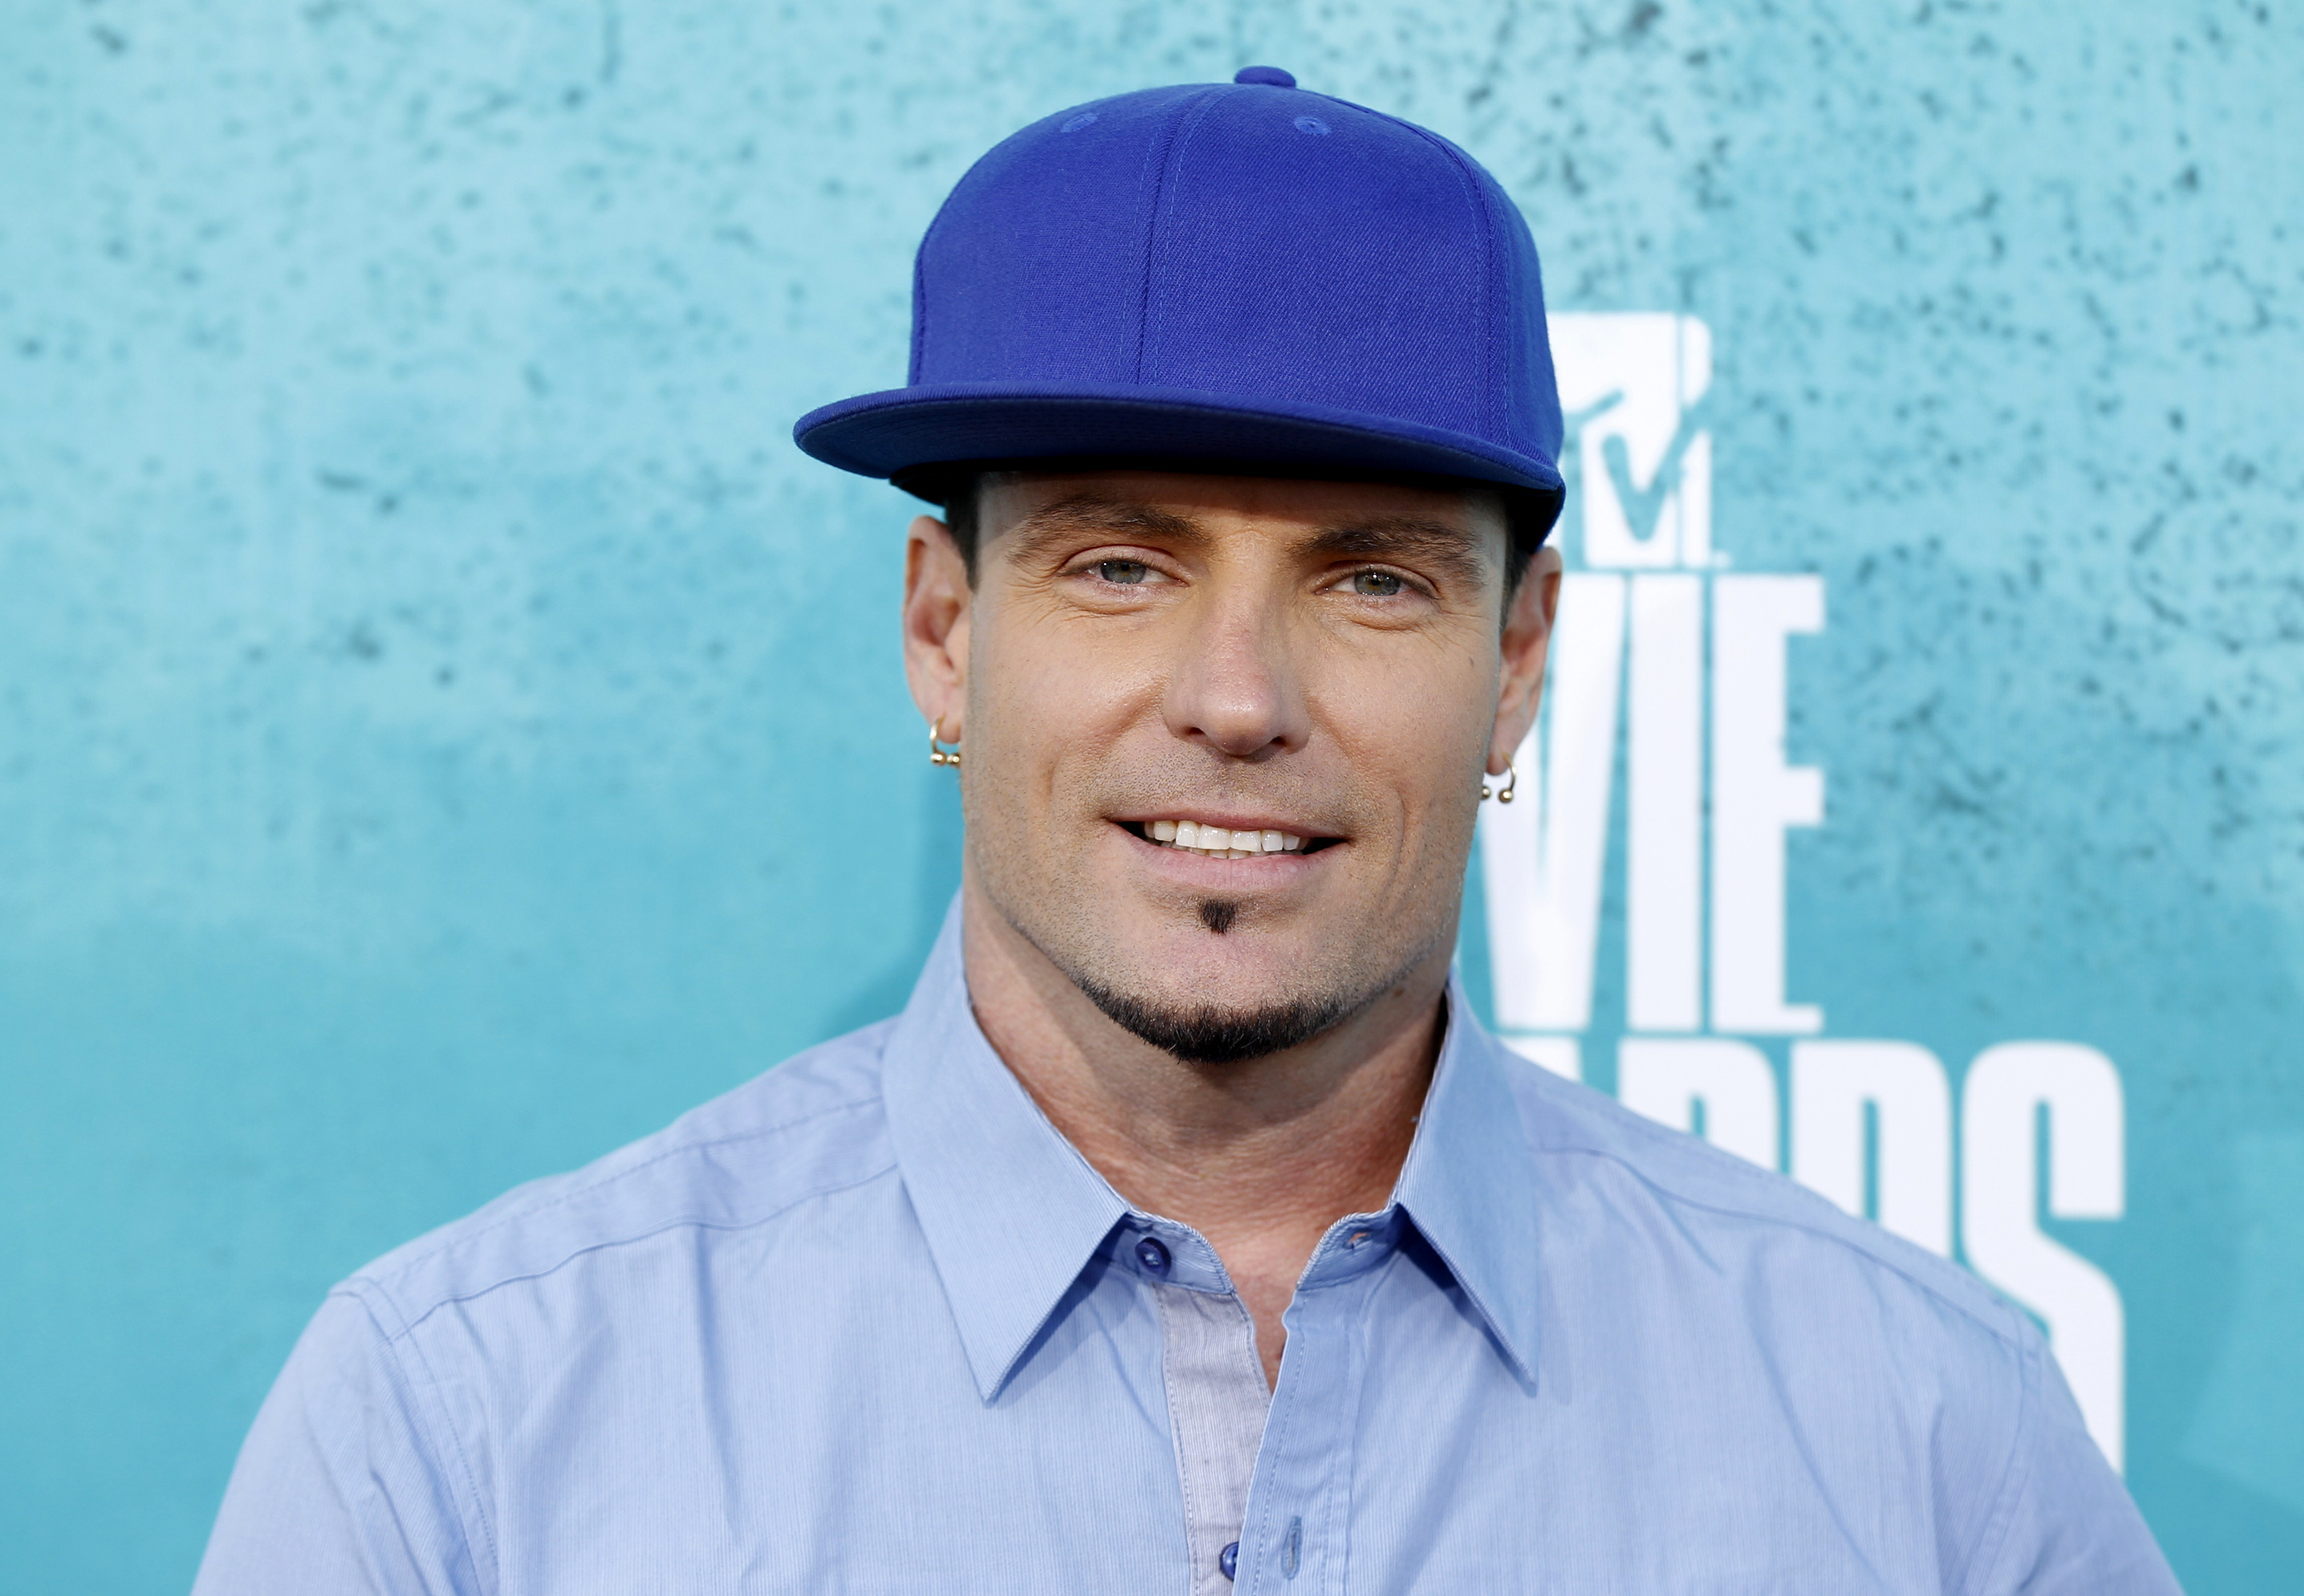 Singer Vanilla Ice arrives at the 2012 MTV Movie Awards in Los Angeles, June 3, 2012